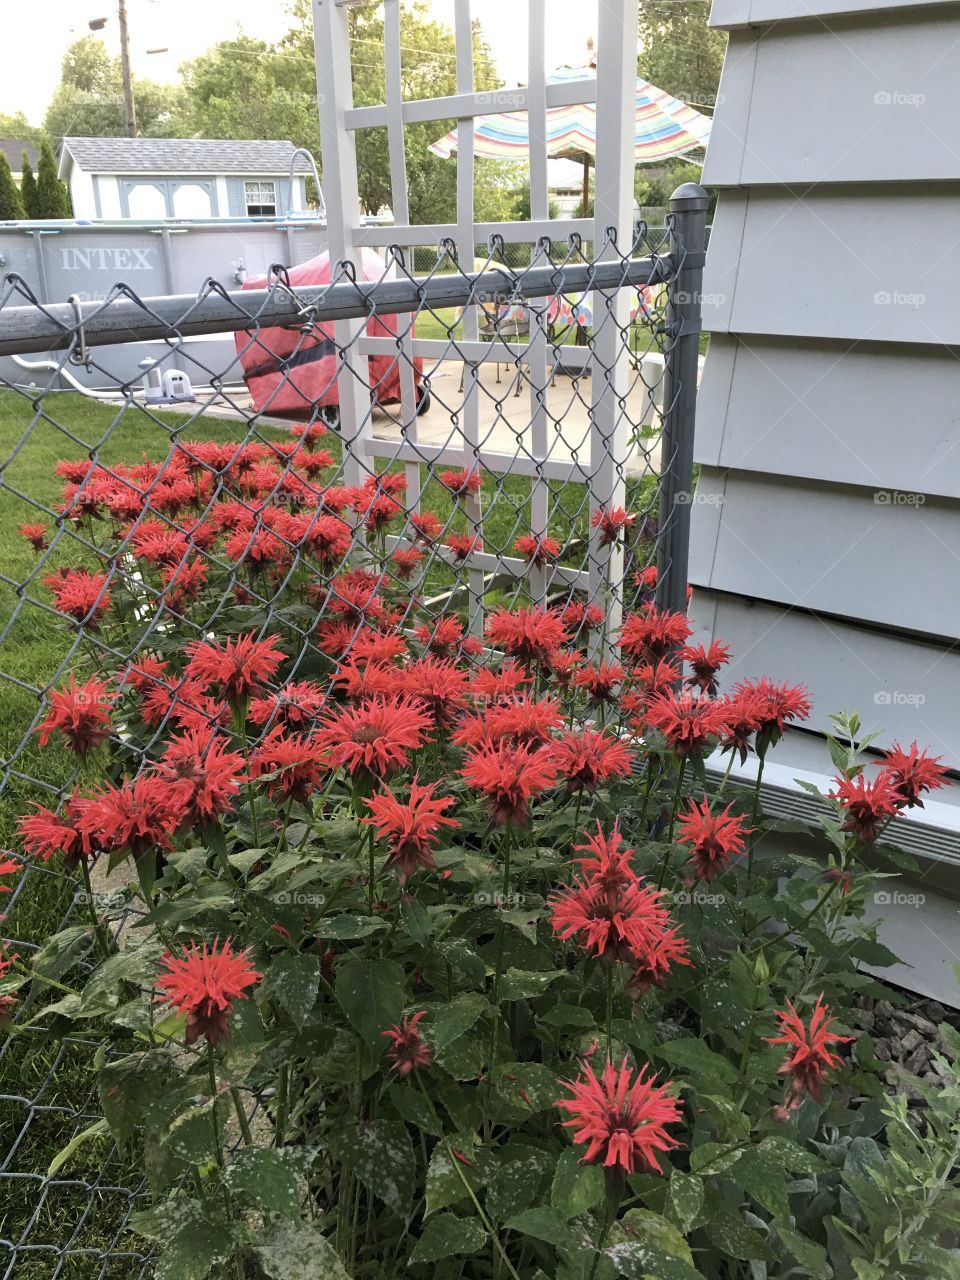 Red beebalm flowers in bloom against fence